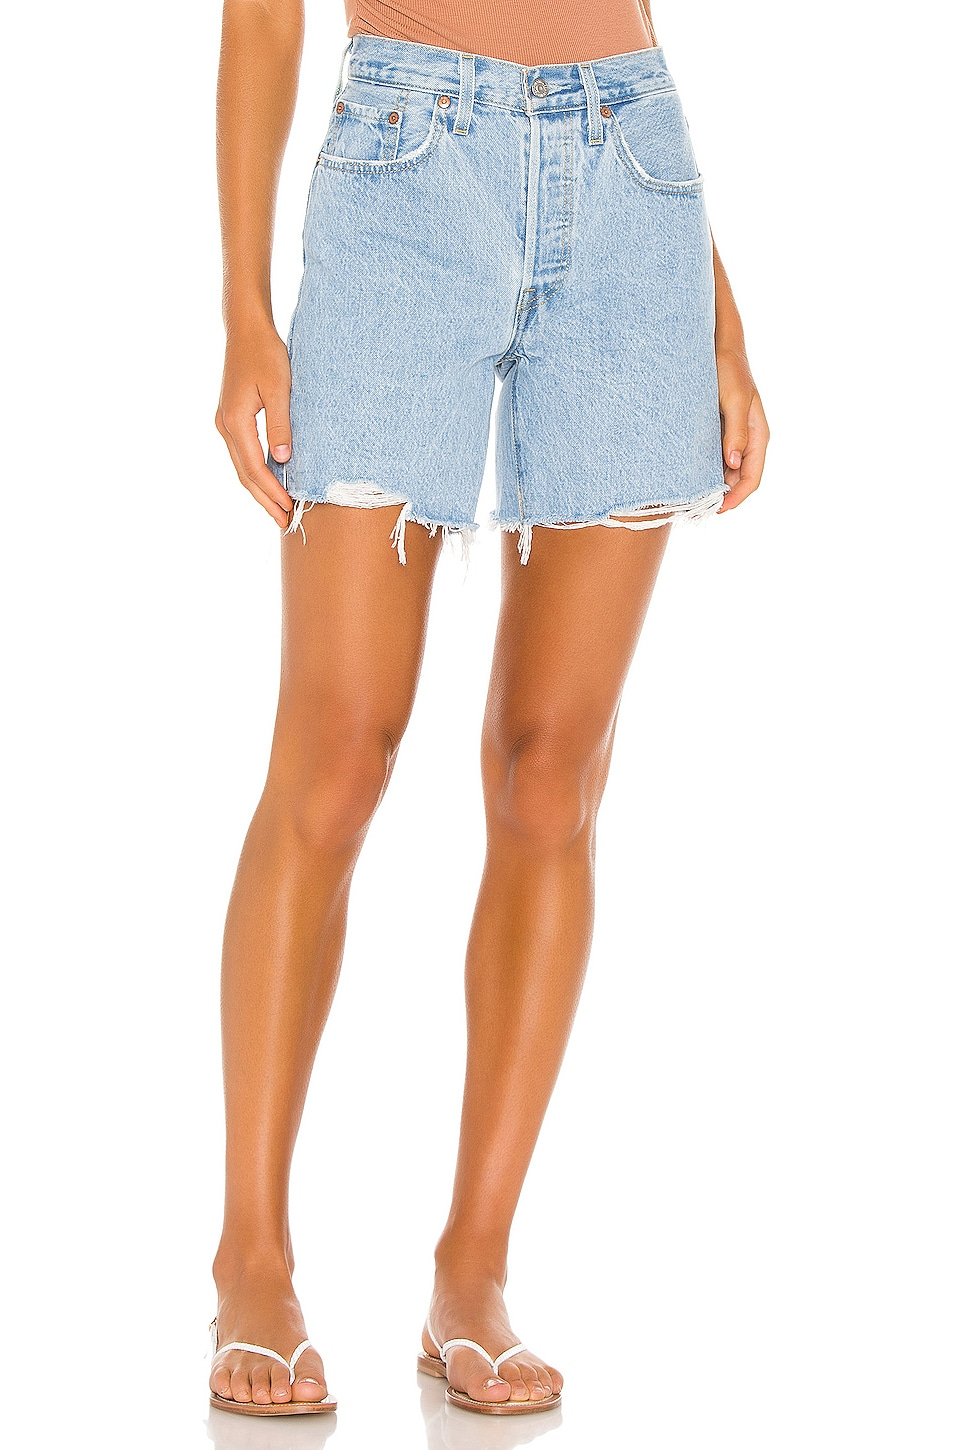 501 Mid Thigh Short             LEVI'S                                                                                                       CA$ 94.58 6